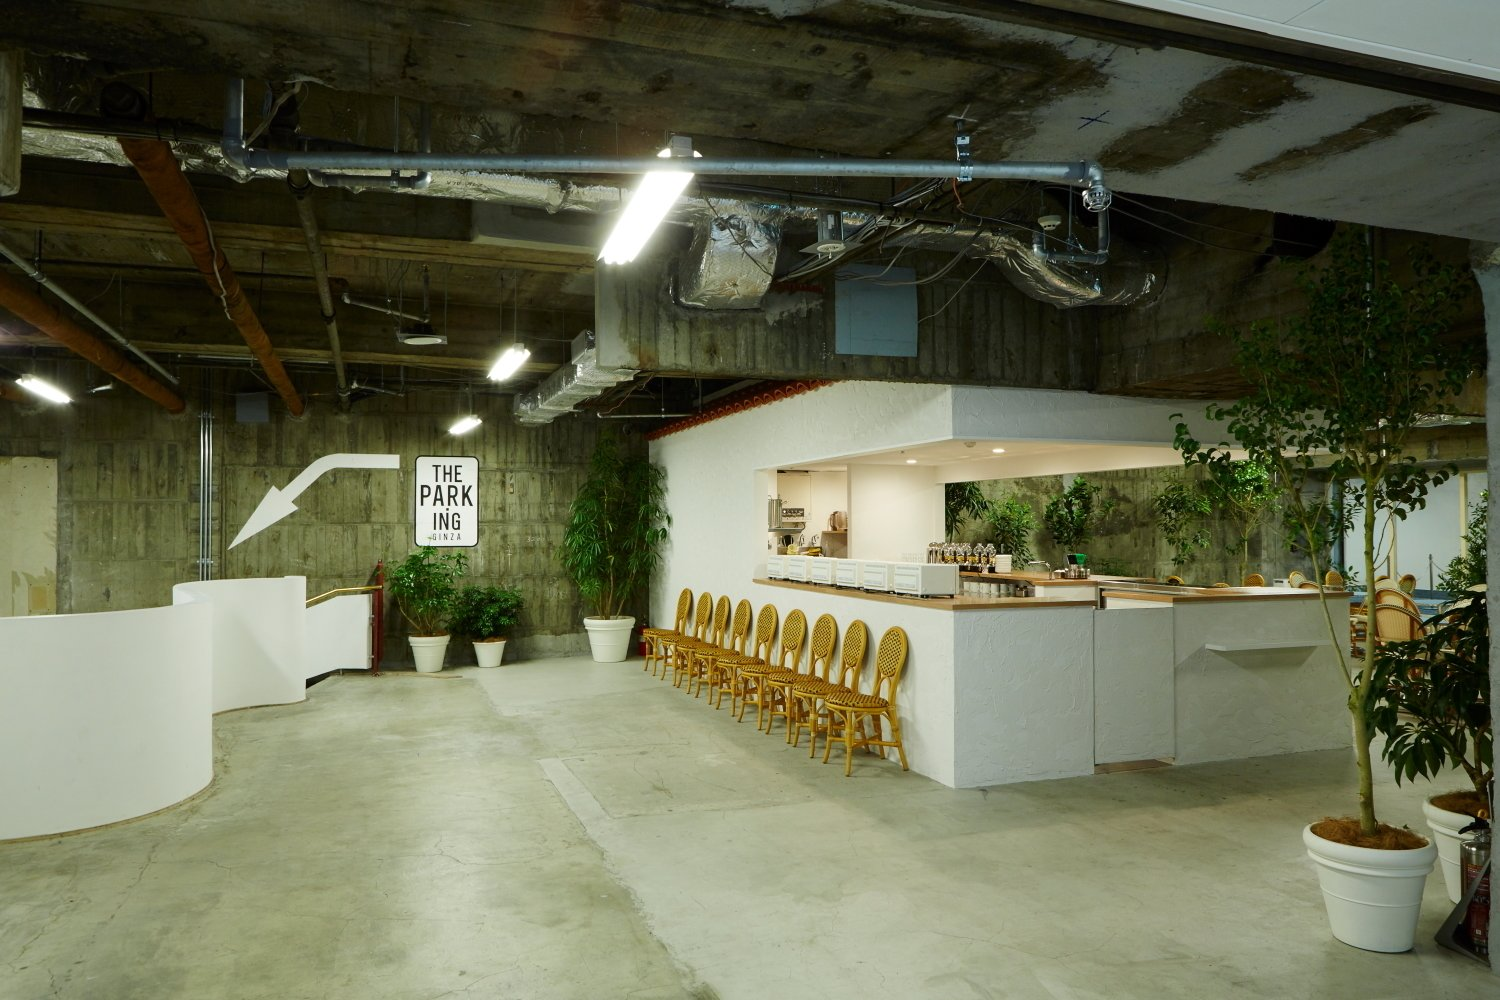 A cafe specializing in toast,  Photo 3 of 7 in A Surprise Hides in this Tokyo Parking Garage